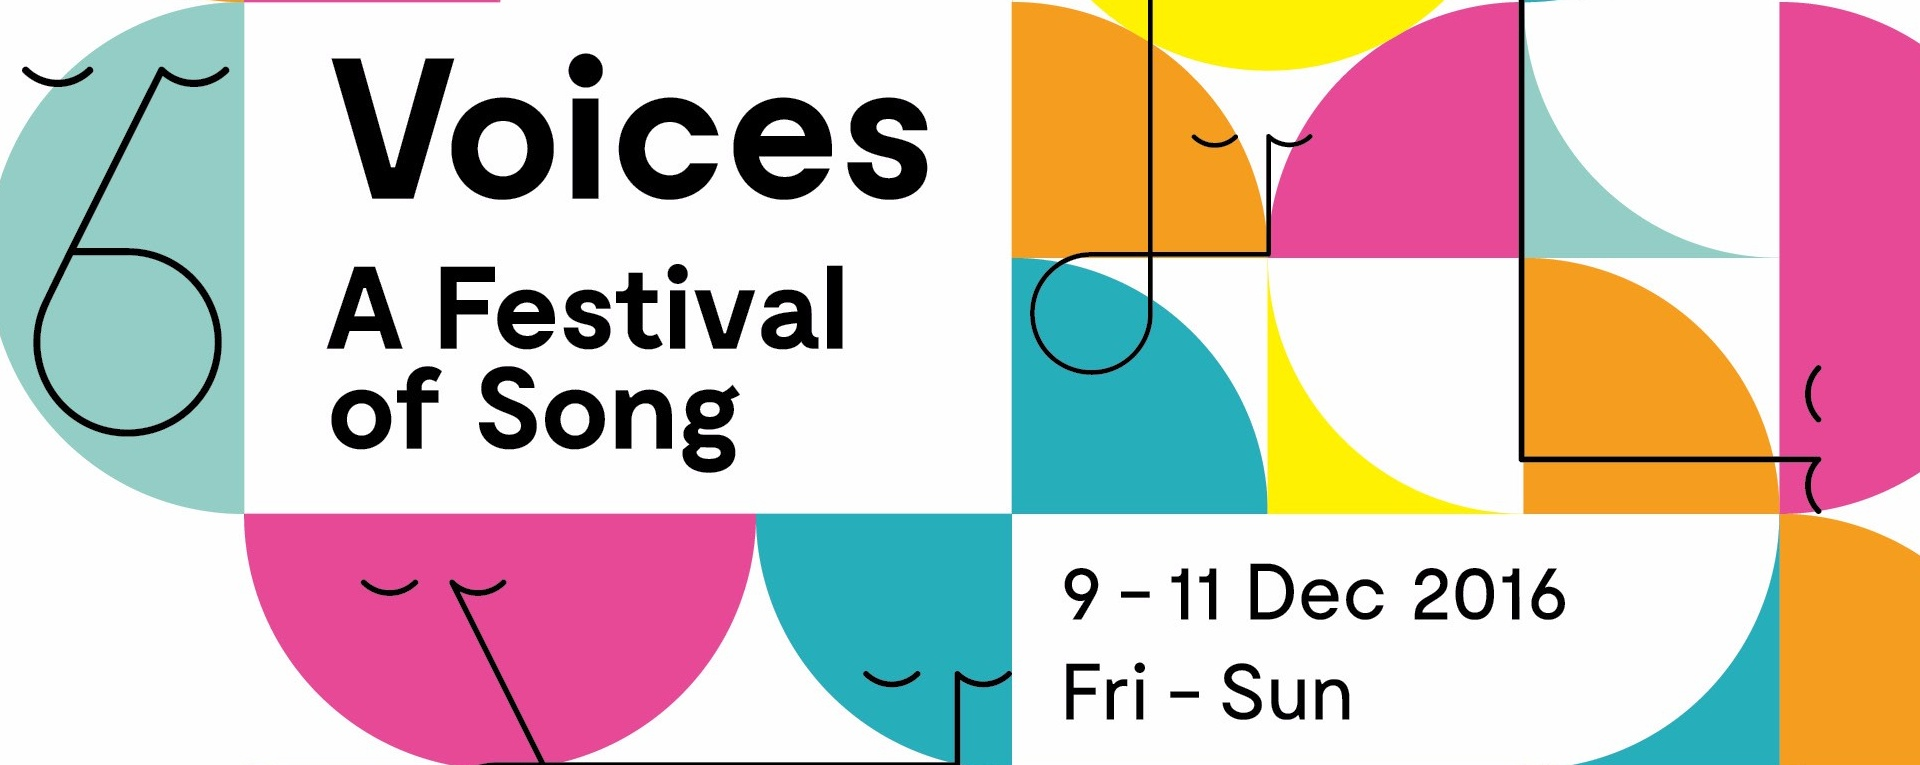 Voices - A Festival of Song 2016